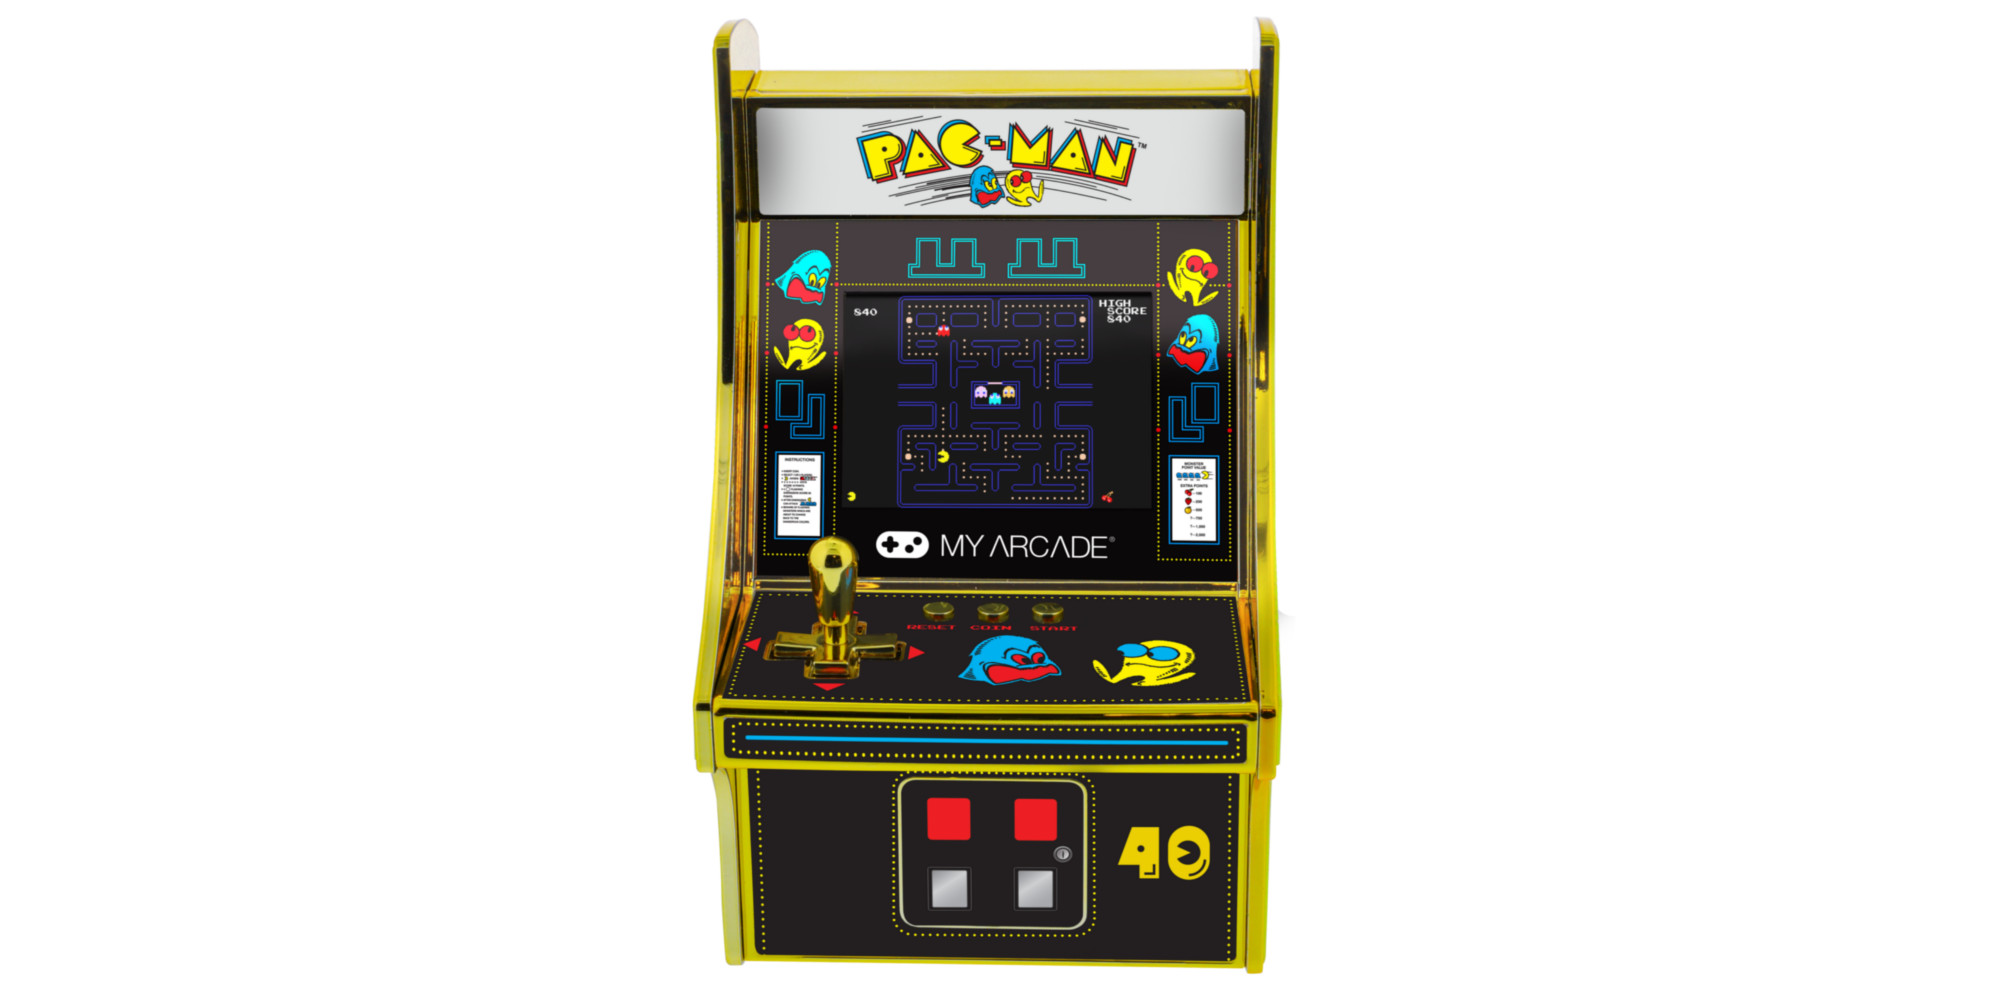 PAC-MAN mini arcade coming soon